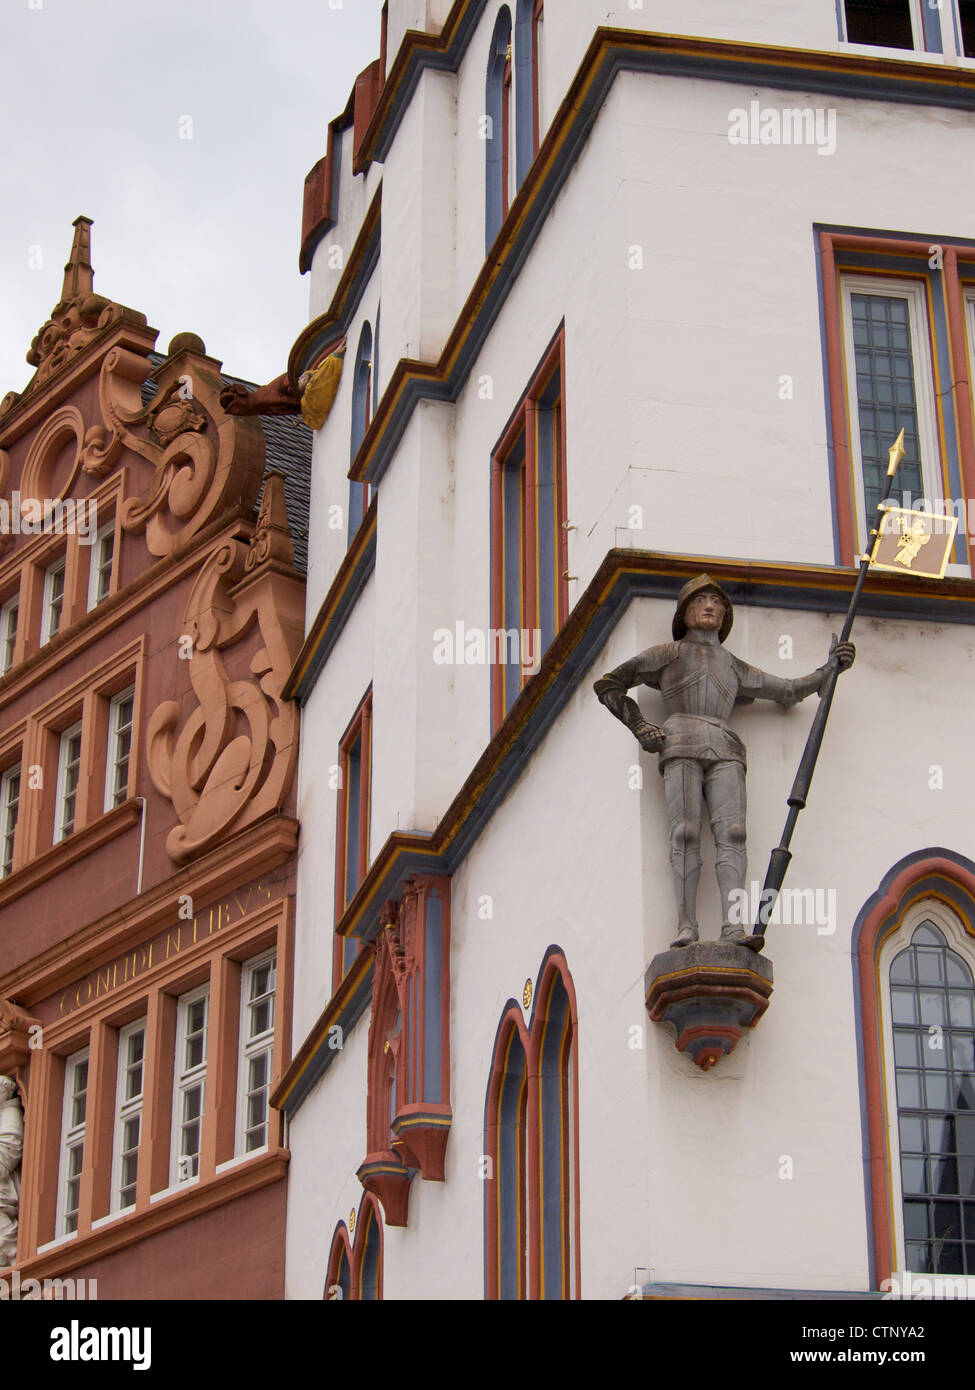 Beautiful building details in the historic city center of Trier, Germany - Stock Image